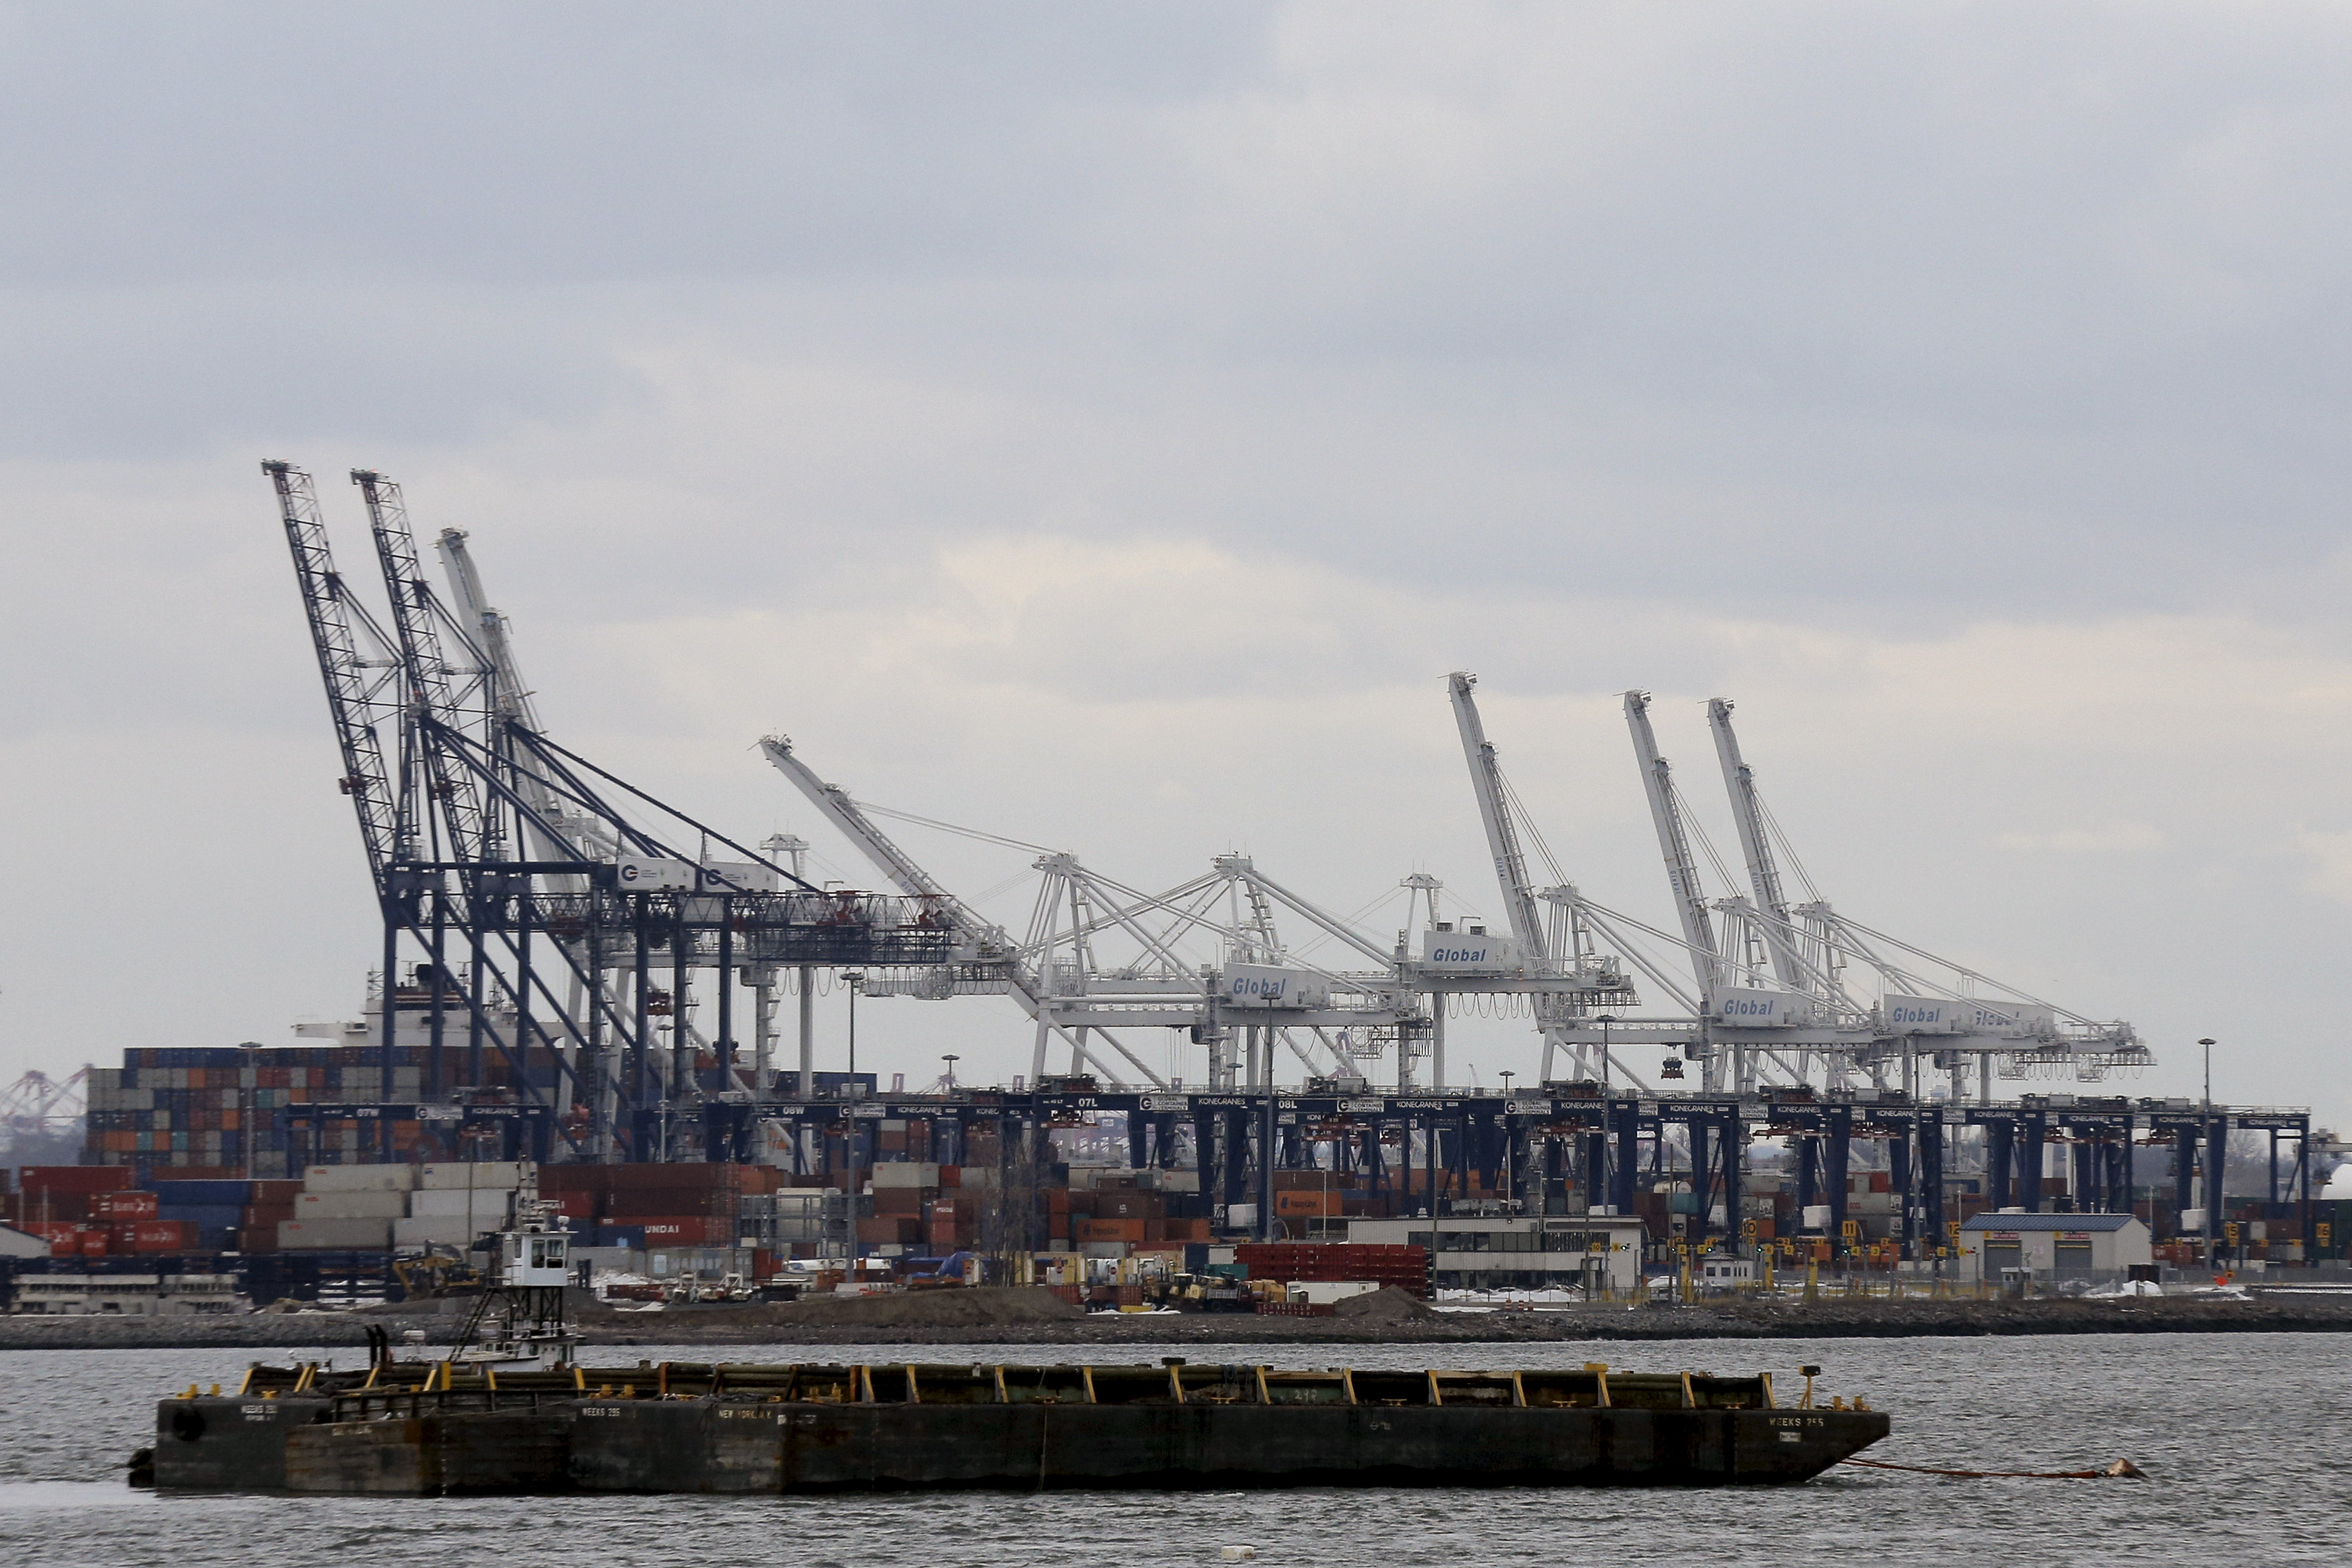 A barge is seen as containers are stacked at the Port in Bayonne, New Jersey during a work stoppage in the harbor of New York